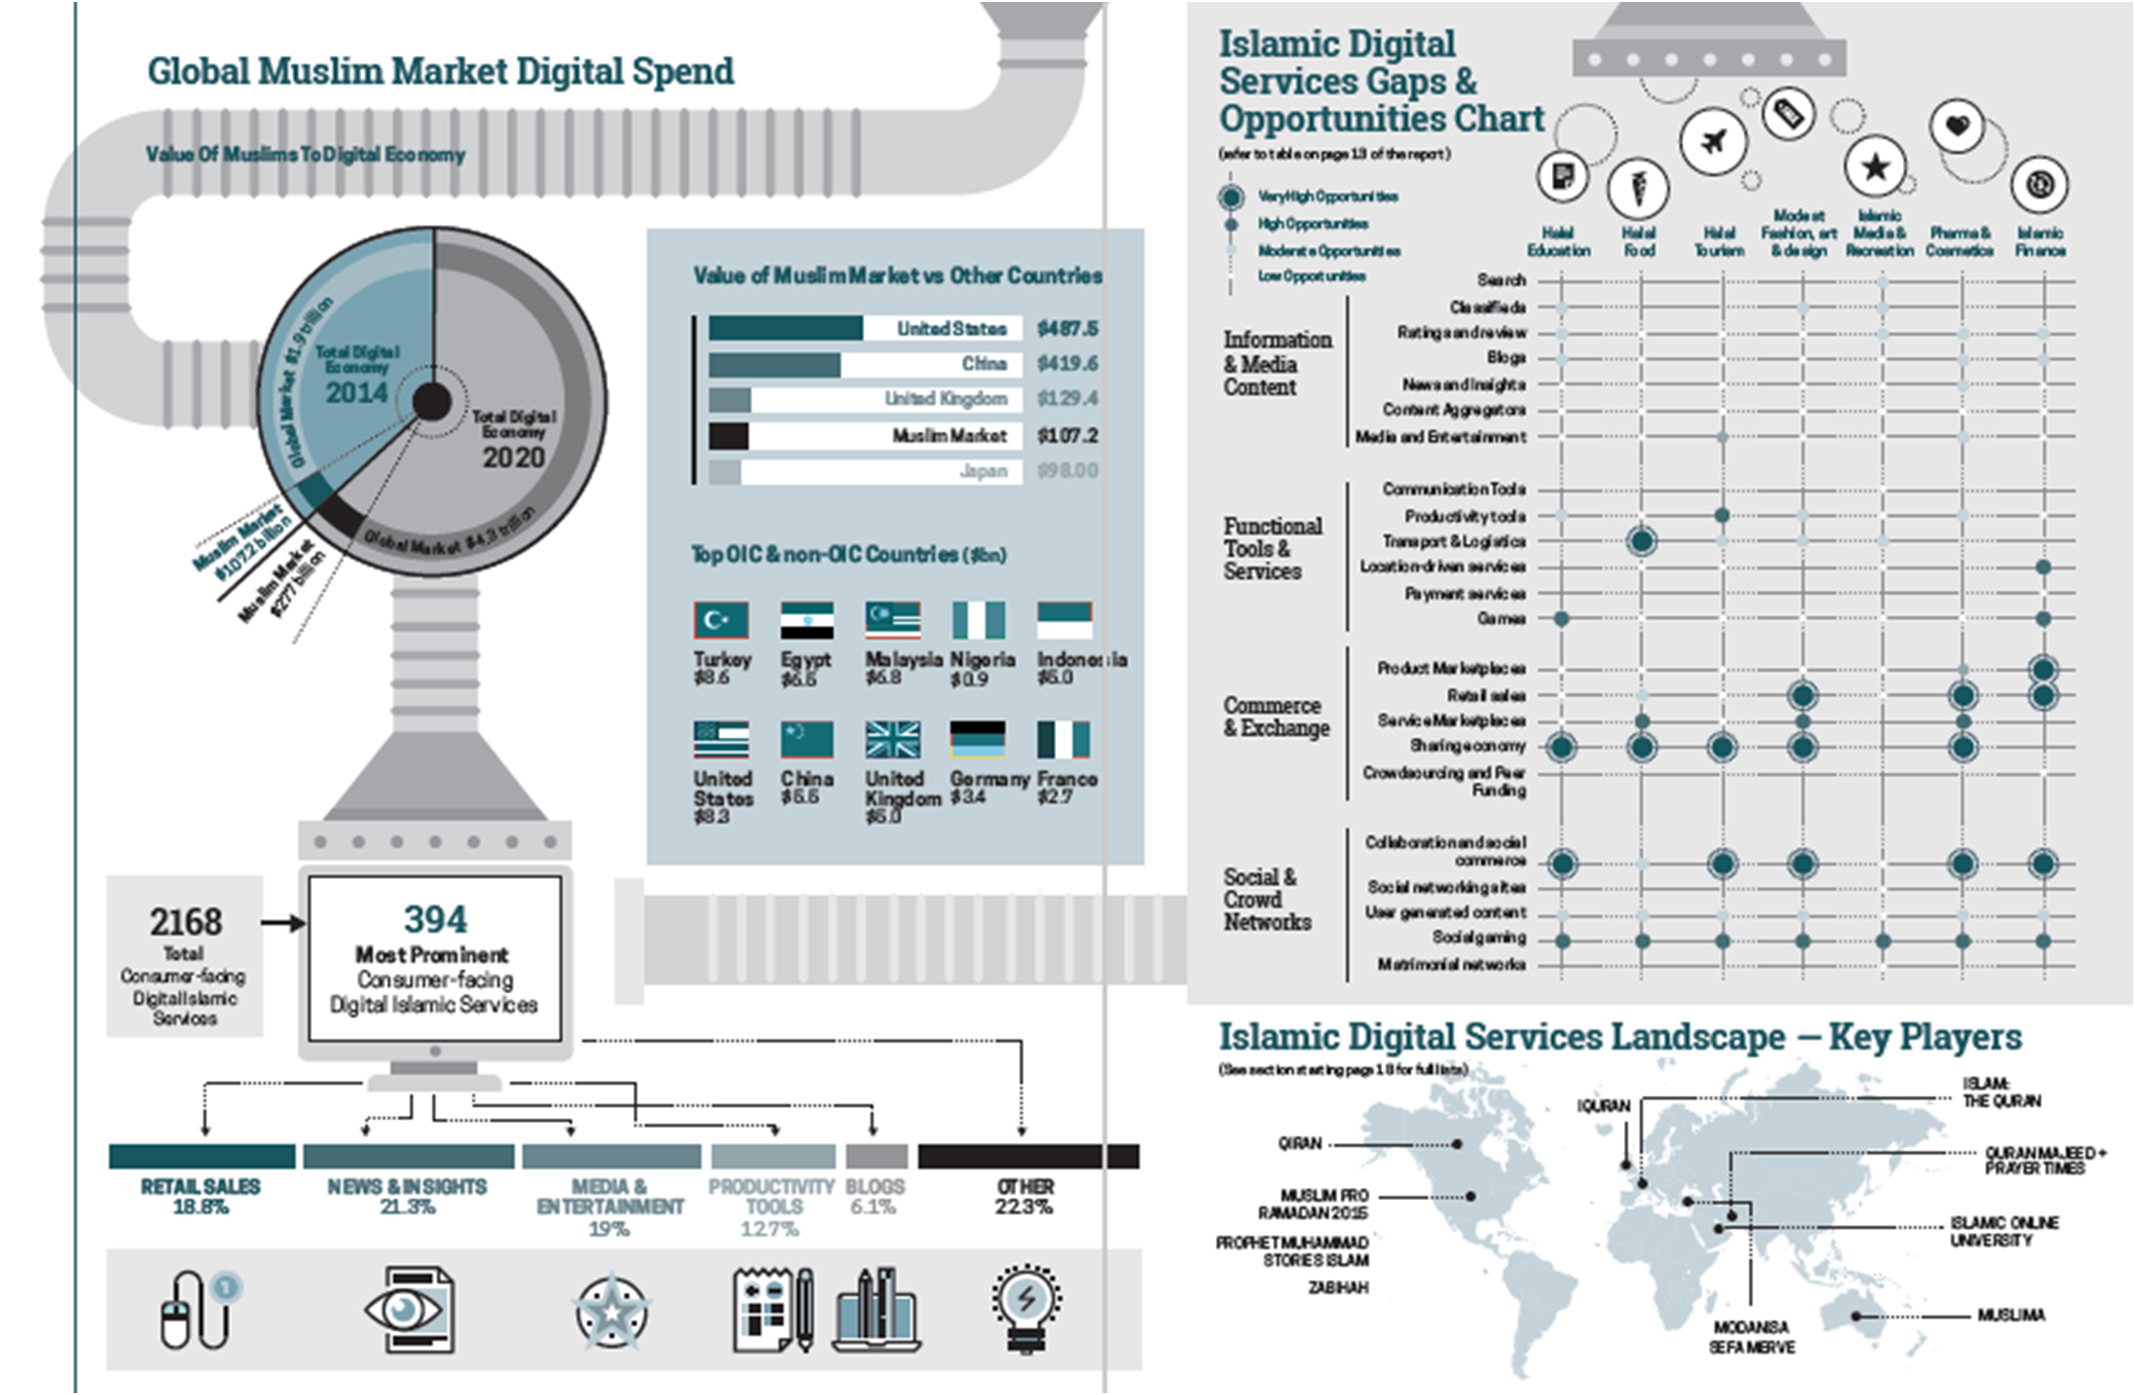 Global Muslim Market Digital Spend